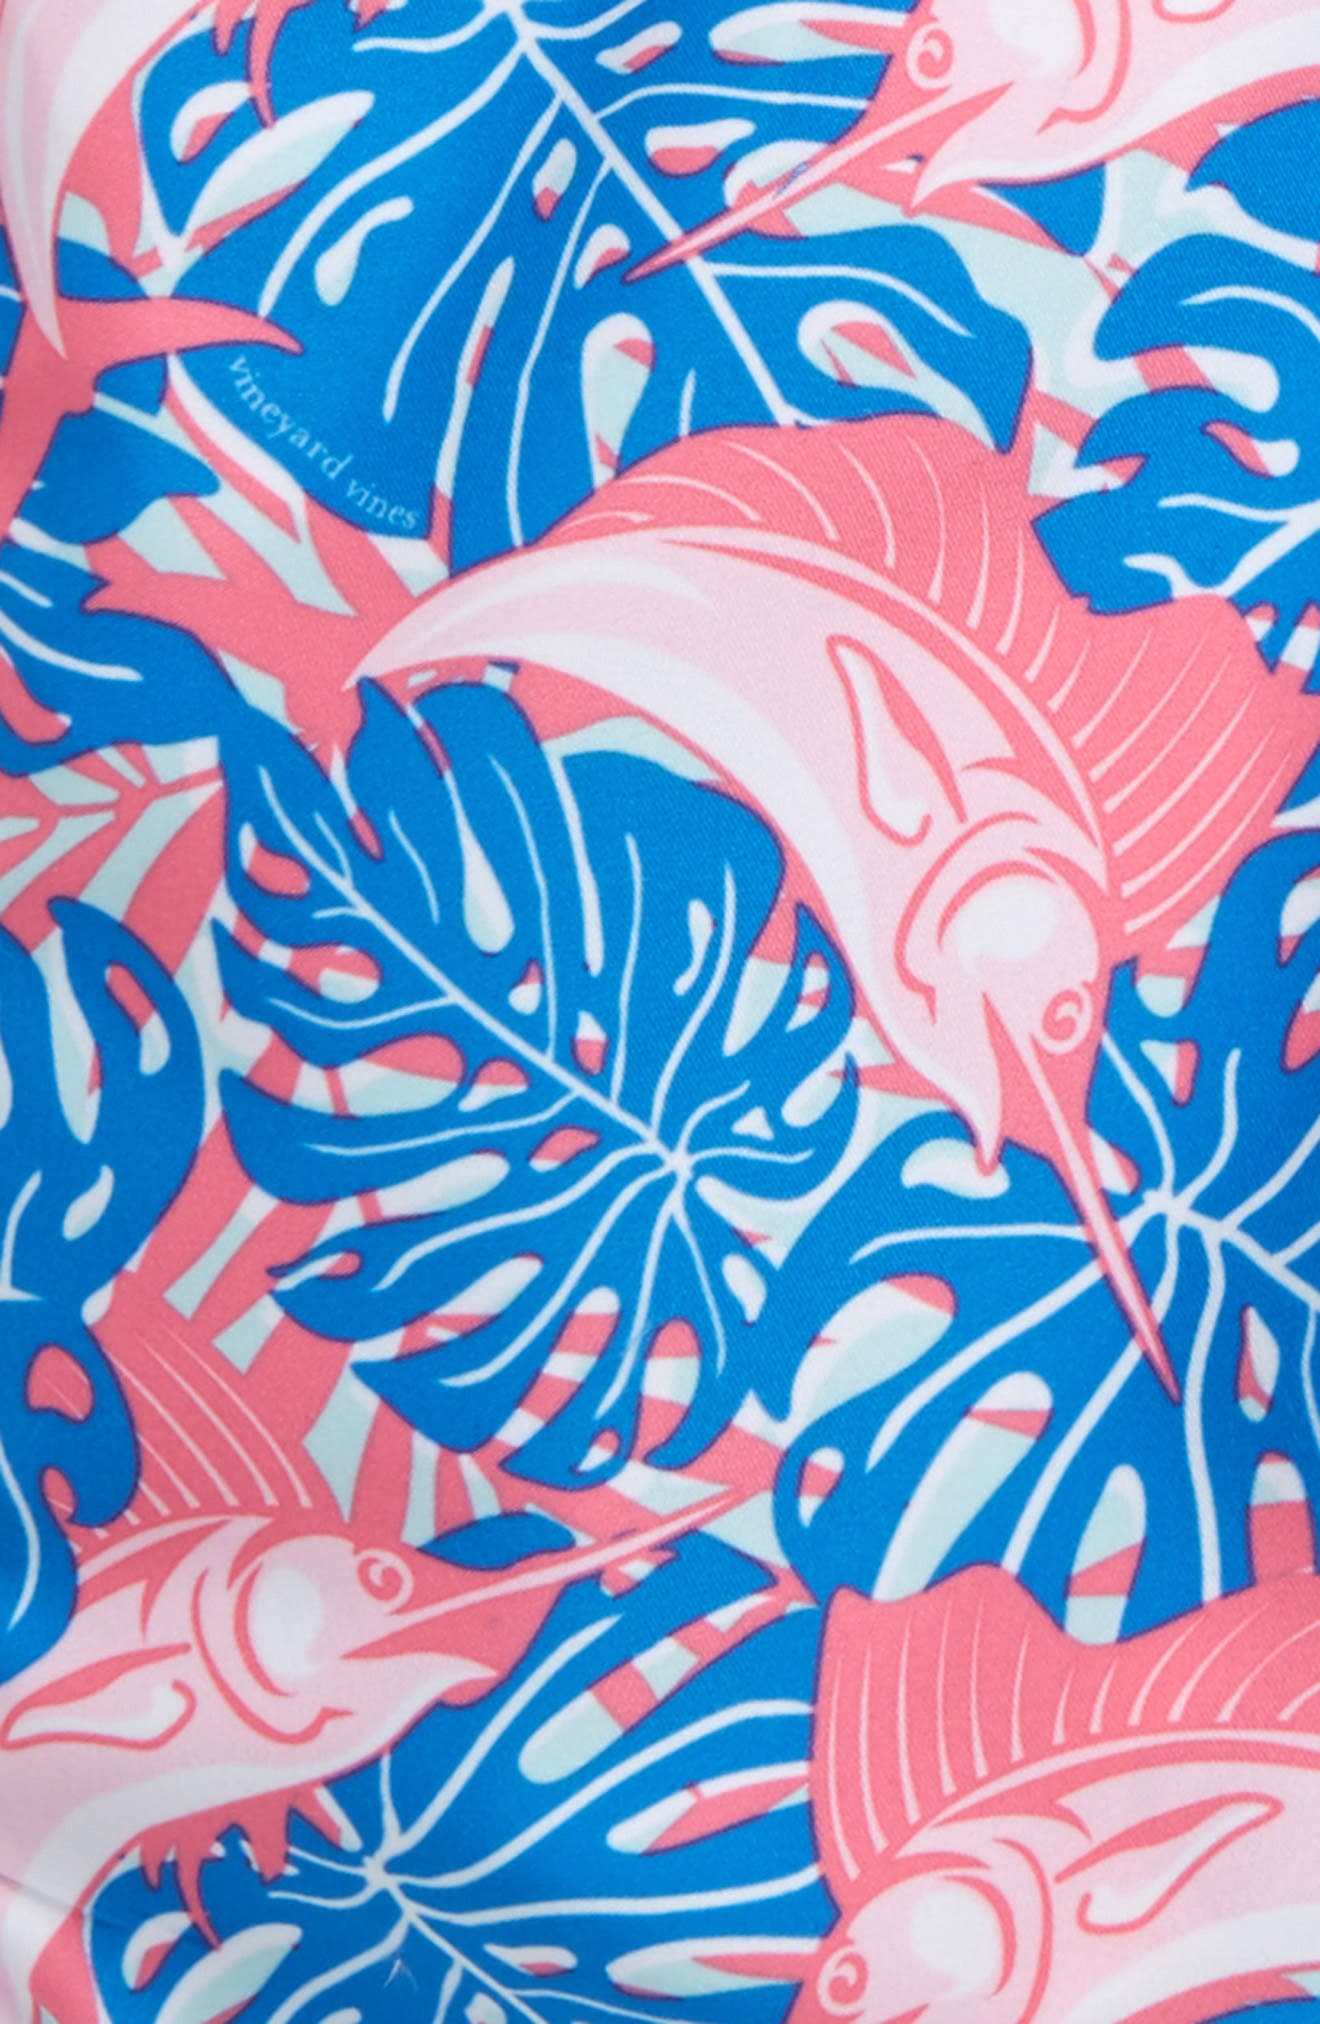 Chappy Sailfish & Leaves Swim Trunks,                             Alternate thumbnail 2, color,                             474